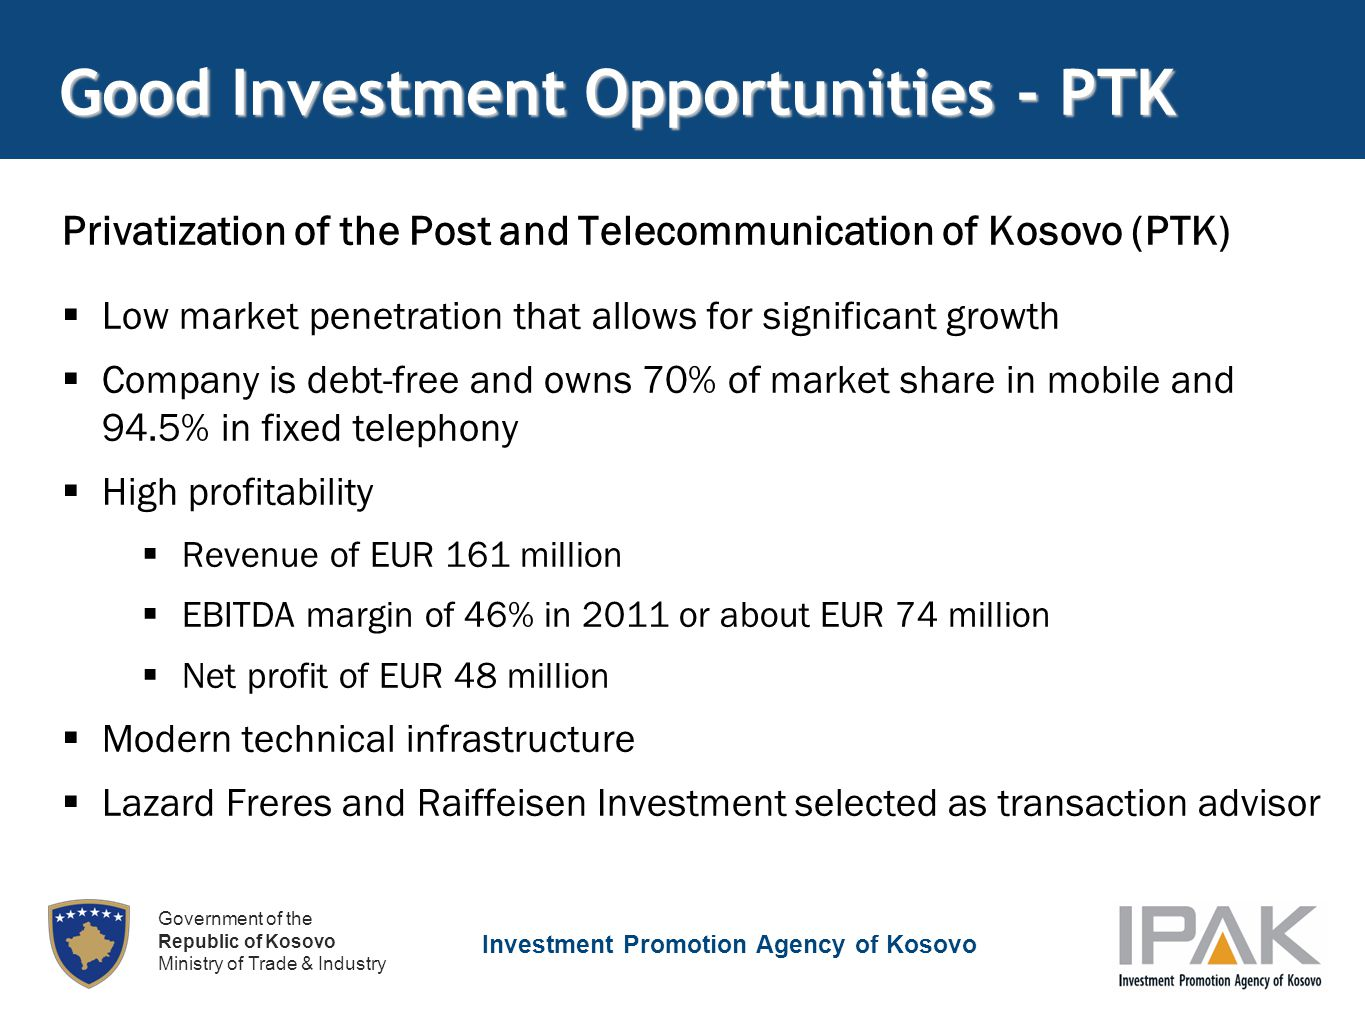 Investment Promotion Agency of Kosovo Government of the Republic of Kosovo Ministry of Trade & Industry Good Investment Opportunities - PTK Privatization of the Post and Telecommunication of Kosovo (PTK)  Low market penetration that allows for significant growth  Company is debt-free and owns 70% of market share in mobile and 94.5% in fixed telephony  High profitability  Revenue of EUR 161 million  EBITDA margin of 46% in 2011 or about EUR 74 million  Net profit of EUR 48 million  Modern technical infrastructure  Lazard Freres and Raiffeisen Investment selected as transaction advisor